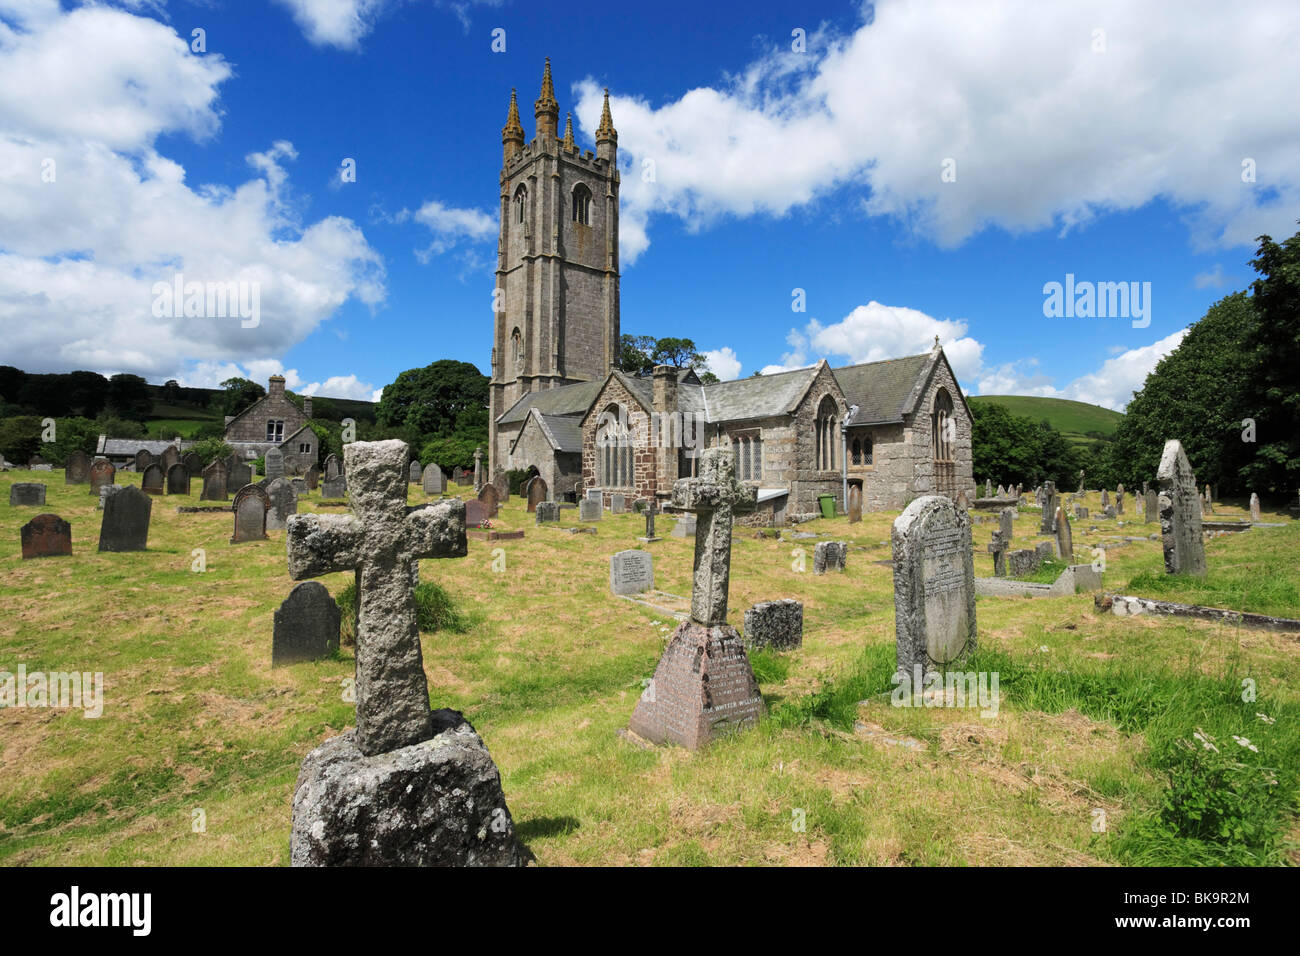 The church of St Pancras, Widecombe-in-the-Moor, Dartmoor National Park, Devon, England, United Kingdom - Stock Image